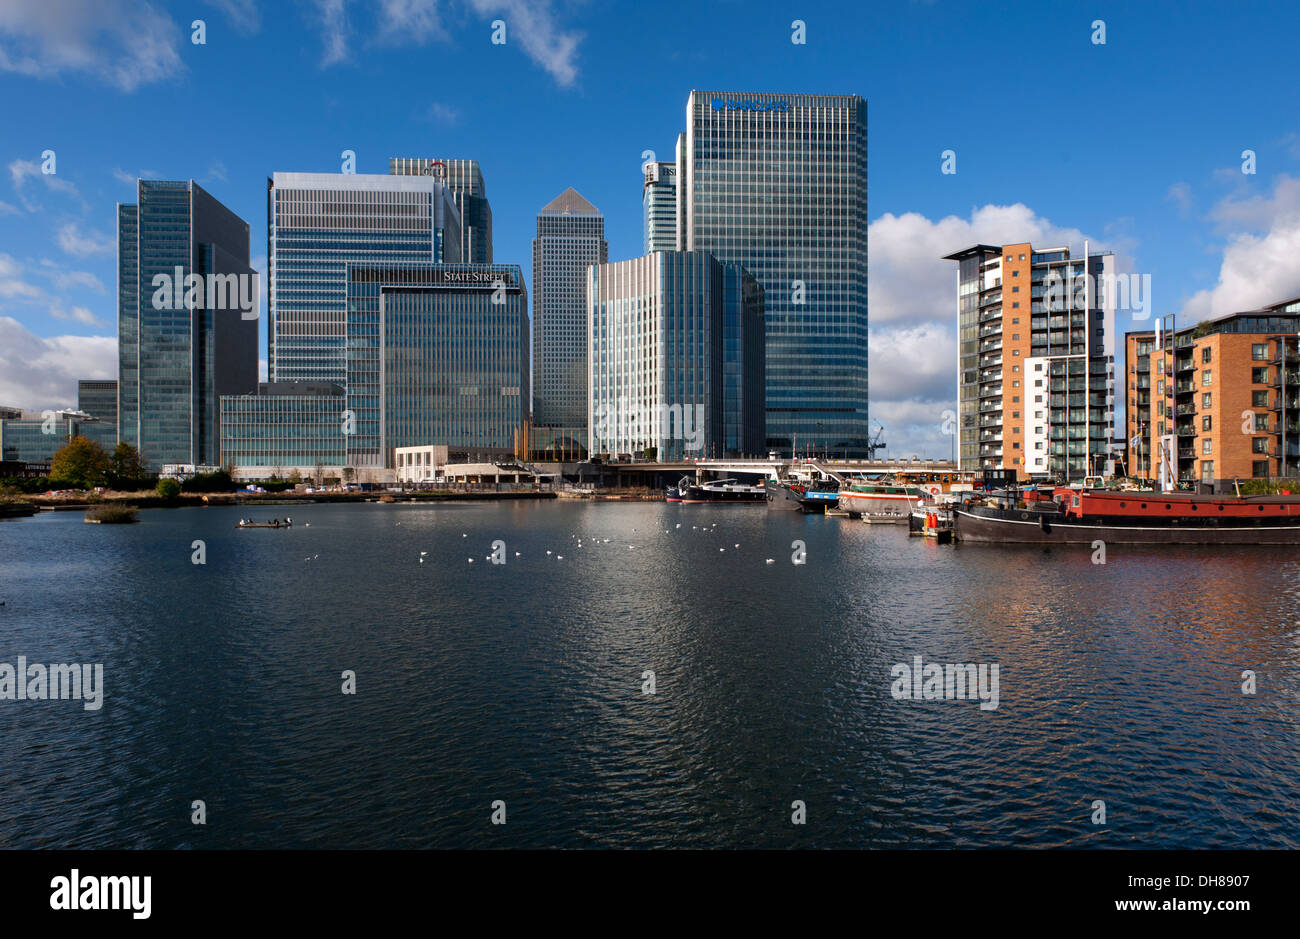 Canary Wharf, Isle of Dogs, London, England, UK. 3 November 2013 High rise buildings of major banks and financial institutions - Stock Image